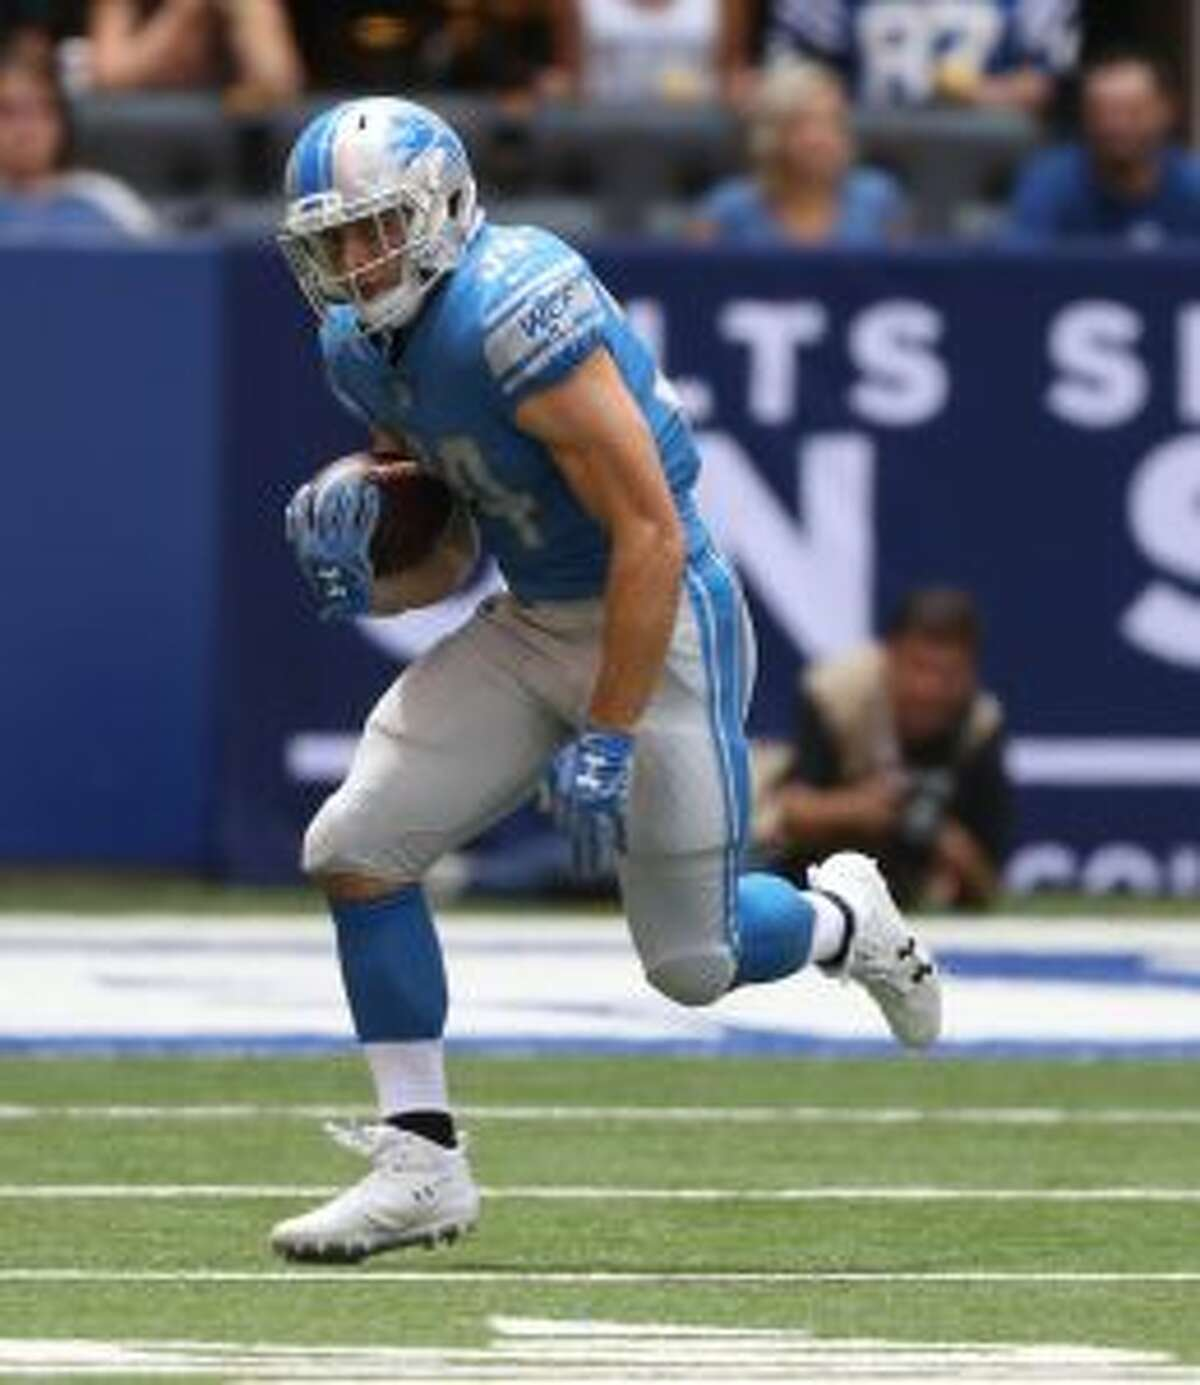 Zach Zenner and the Lions are off to a 2-0 start.